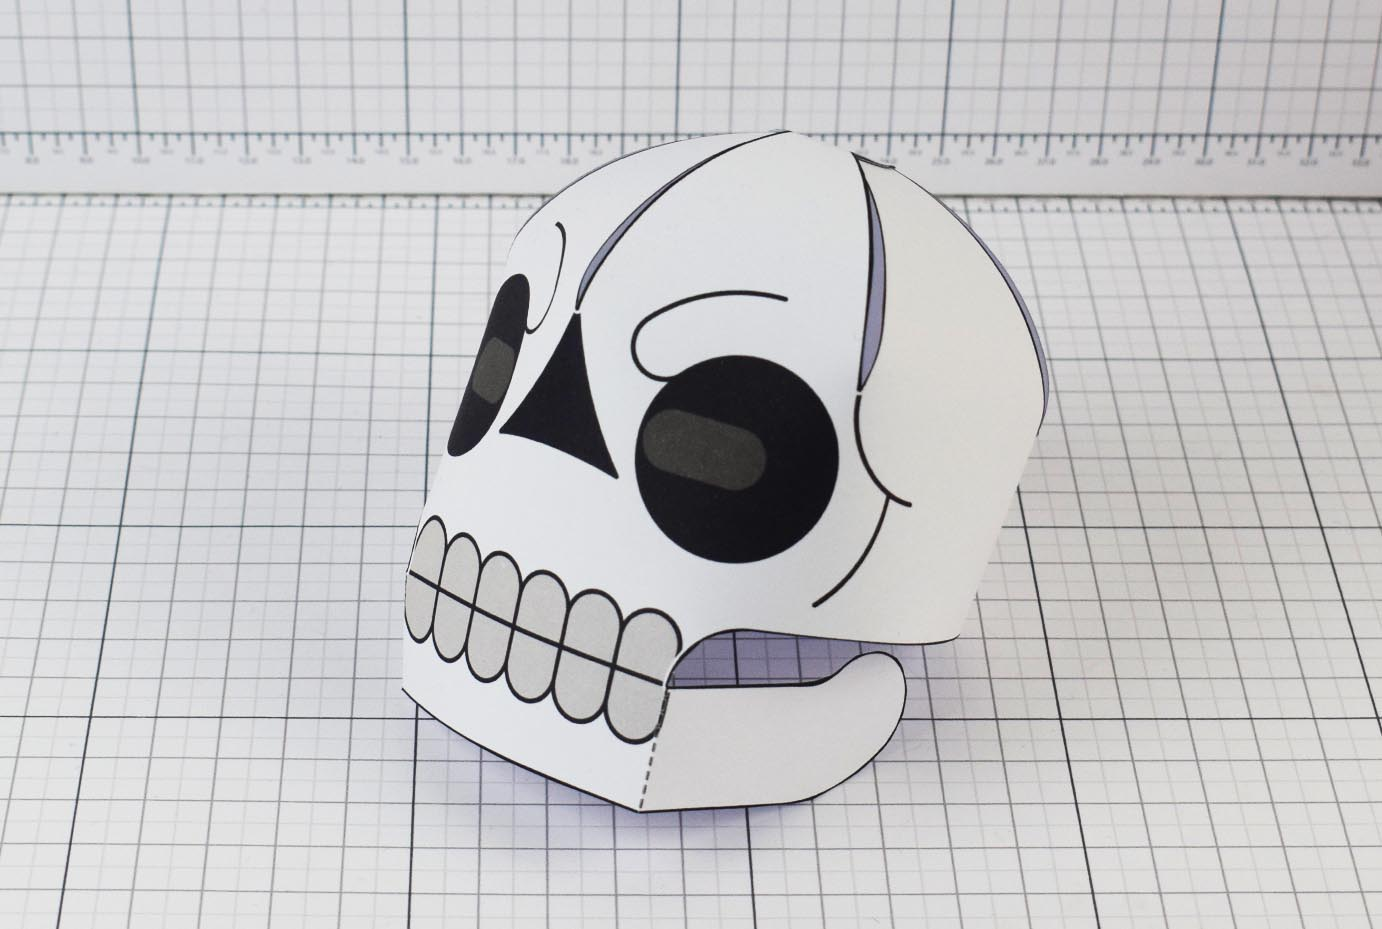 PTI-PTP-Halloween-Skull-Craft-Paper-Toy-Image-Main